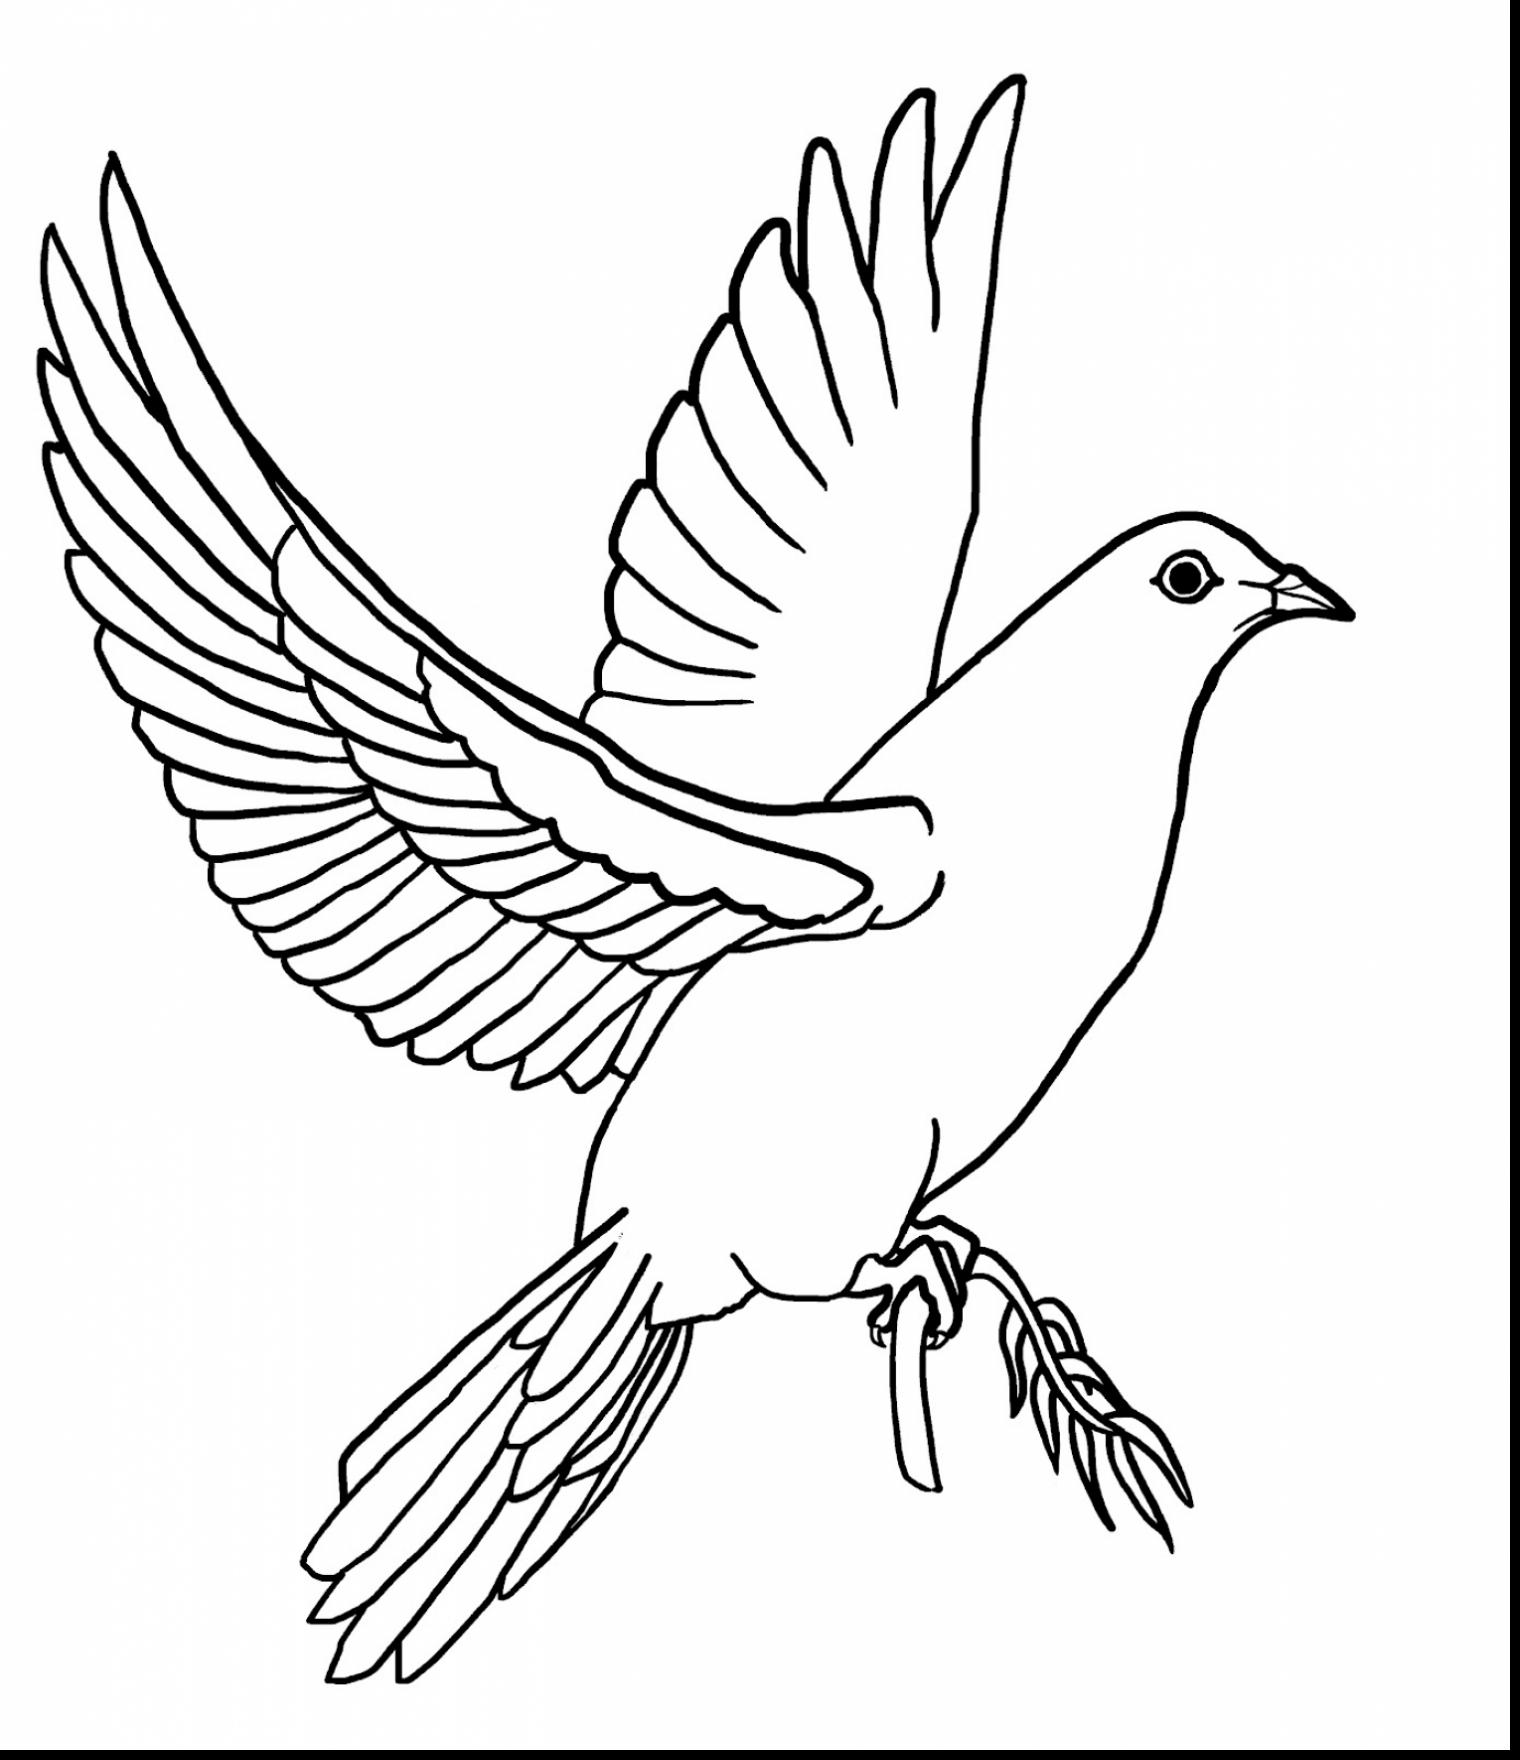 1520x1760 Extraordinary Dove Drawings Pencil With Dove Coloring Page